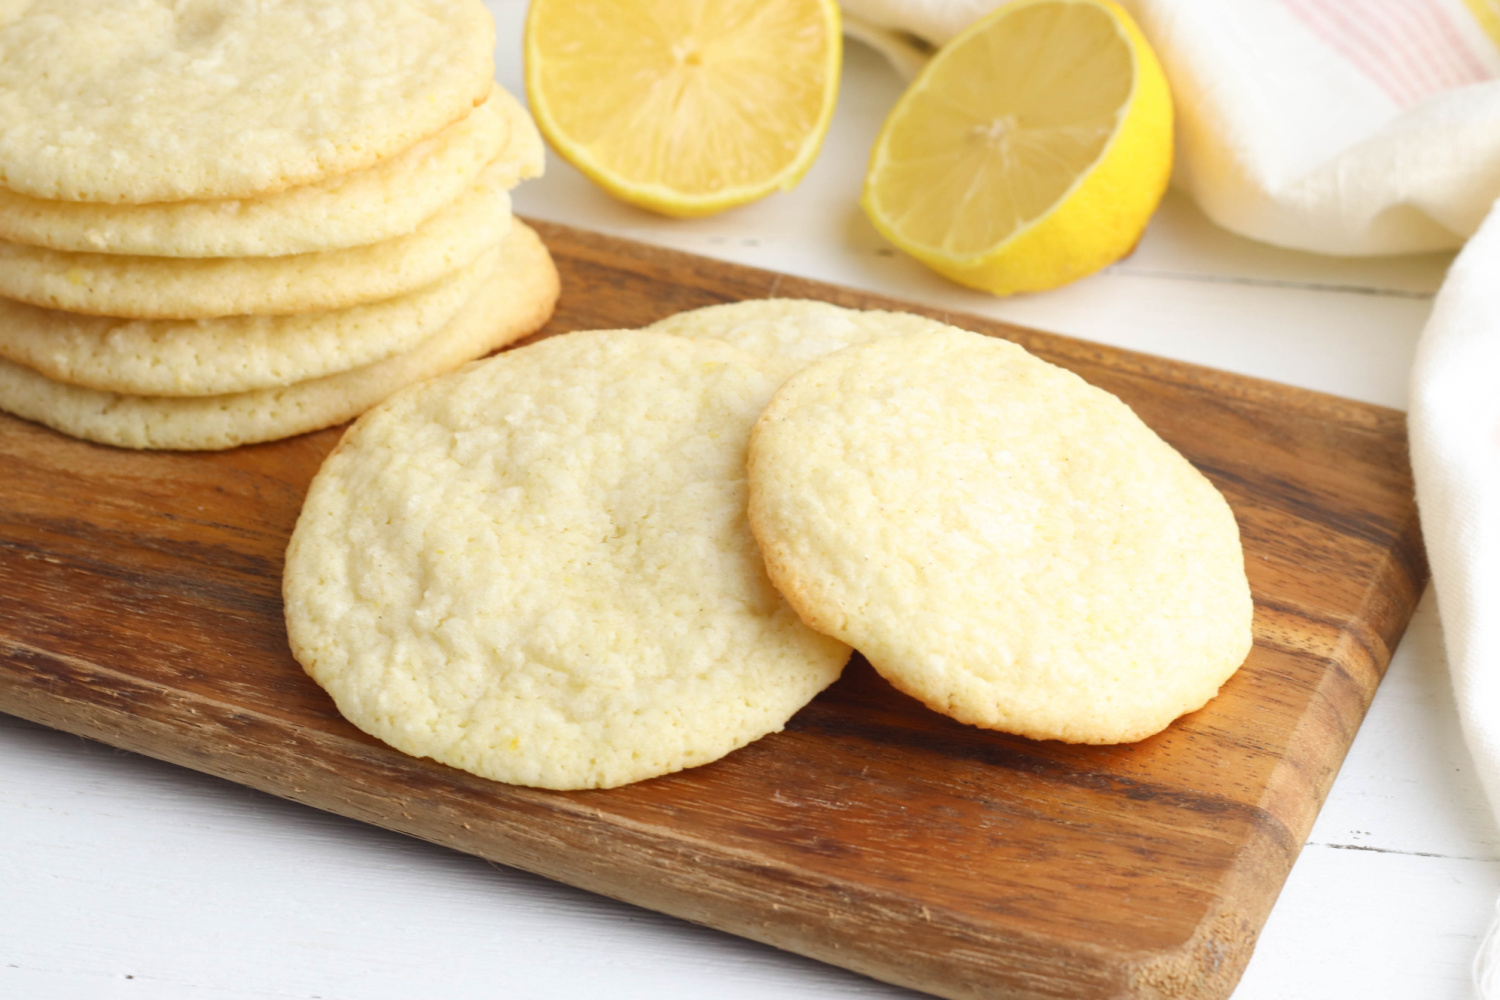 Meyer Lemon Cookies sitting on a counter with lemons.